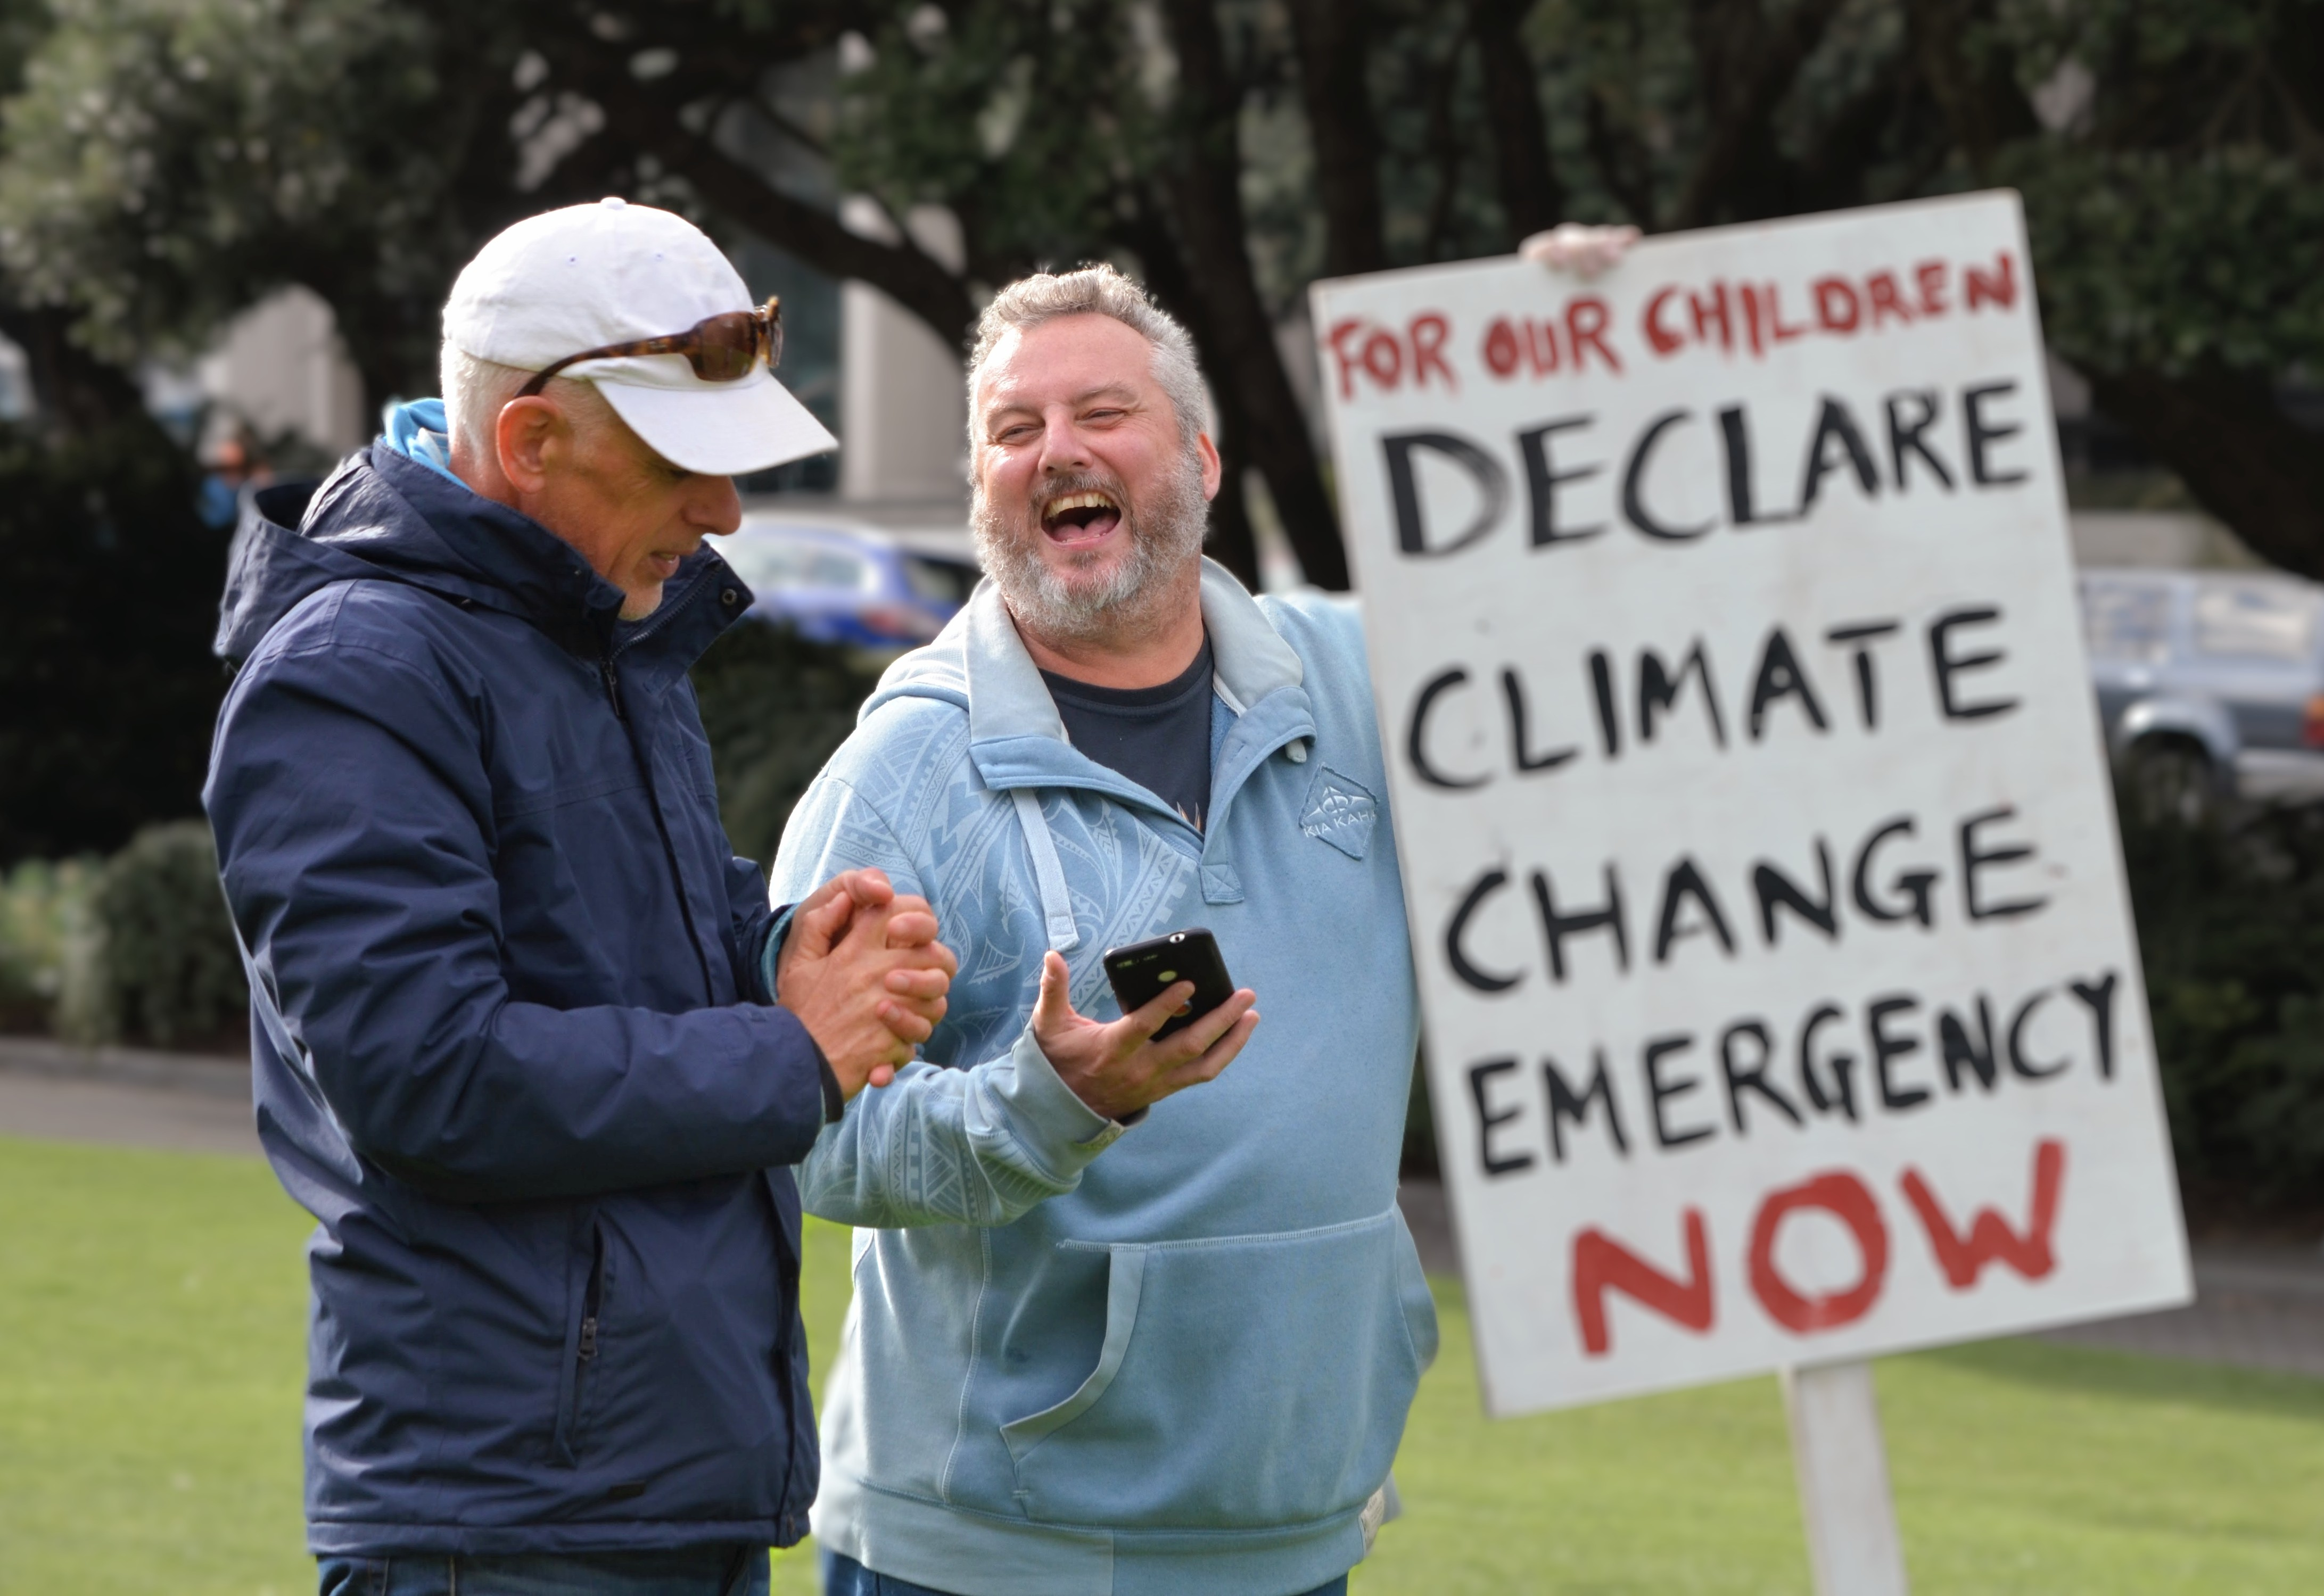 Ollie and Mike, 'Declare Climate Emergency Now'